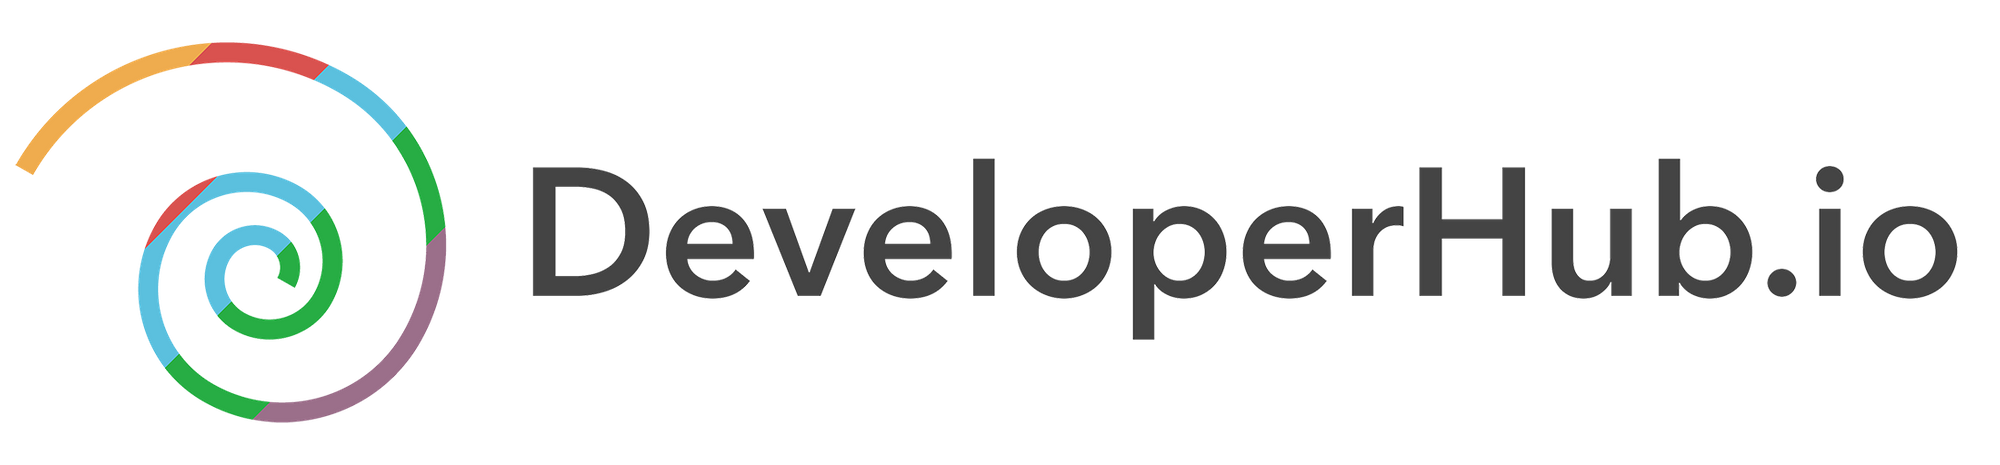 DeveloperHub.io